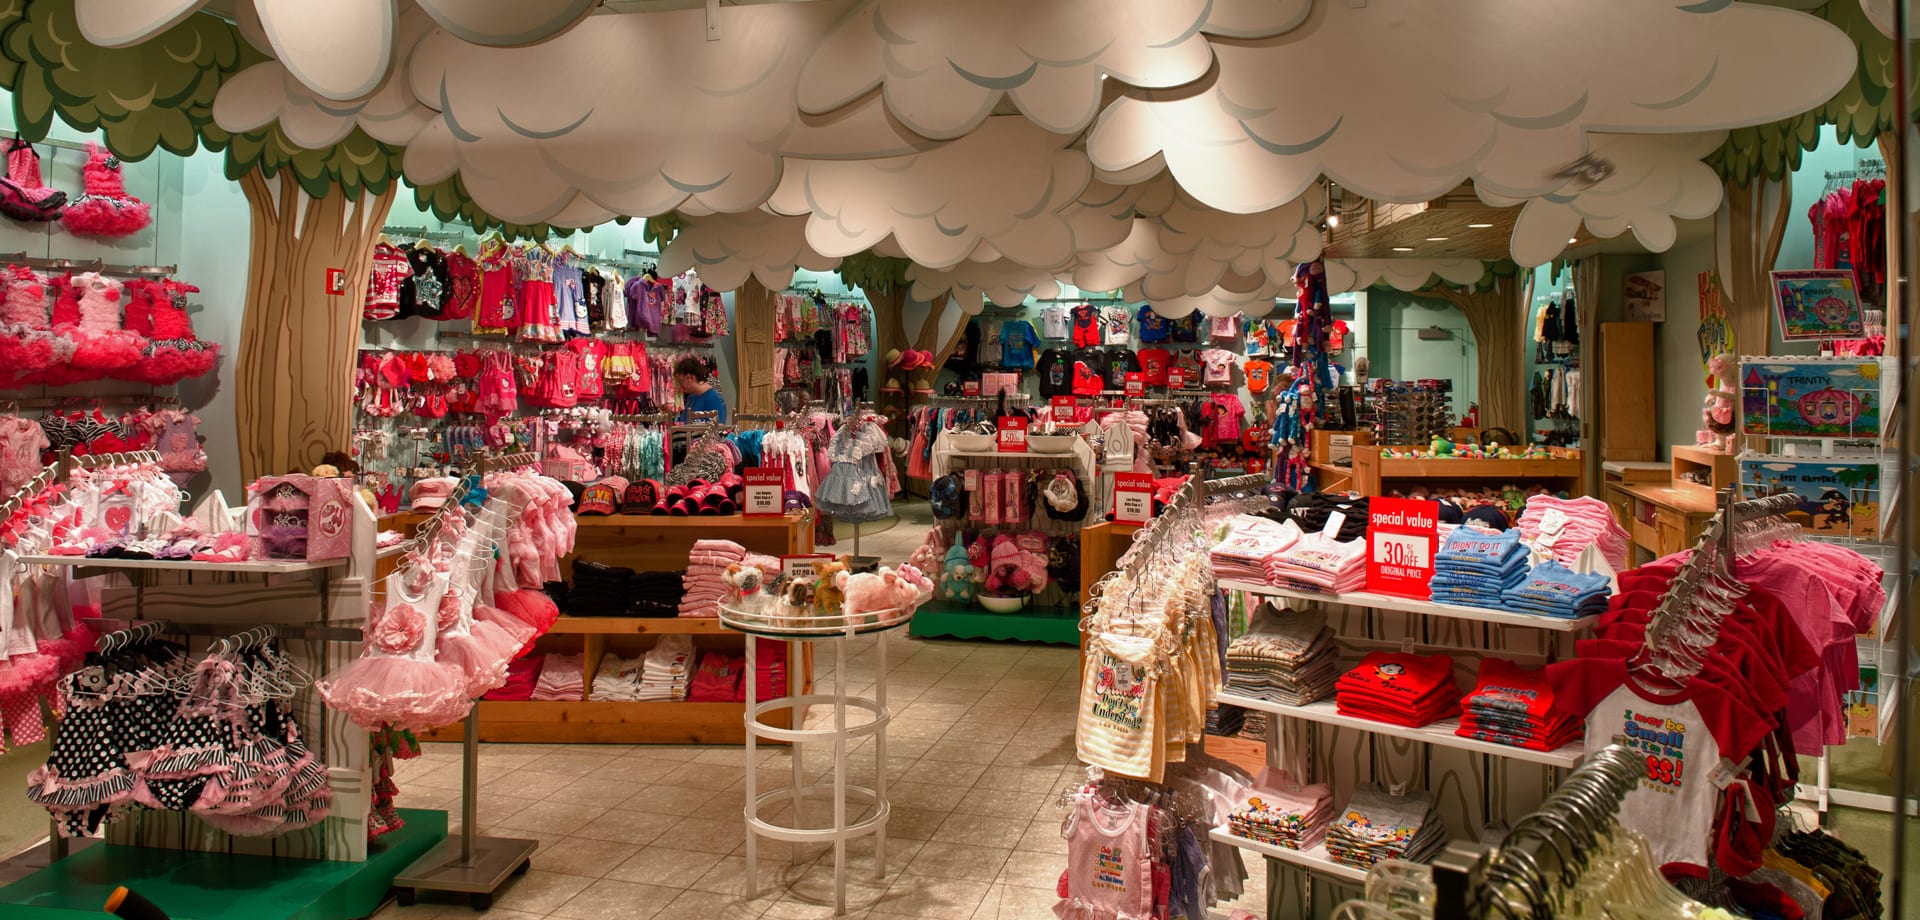 The interior of the Kids Camp store